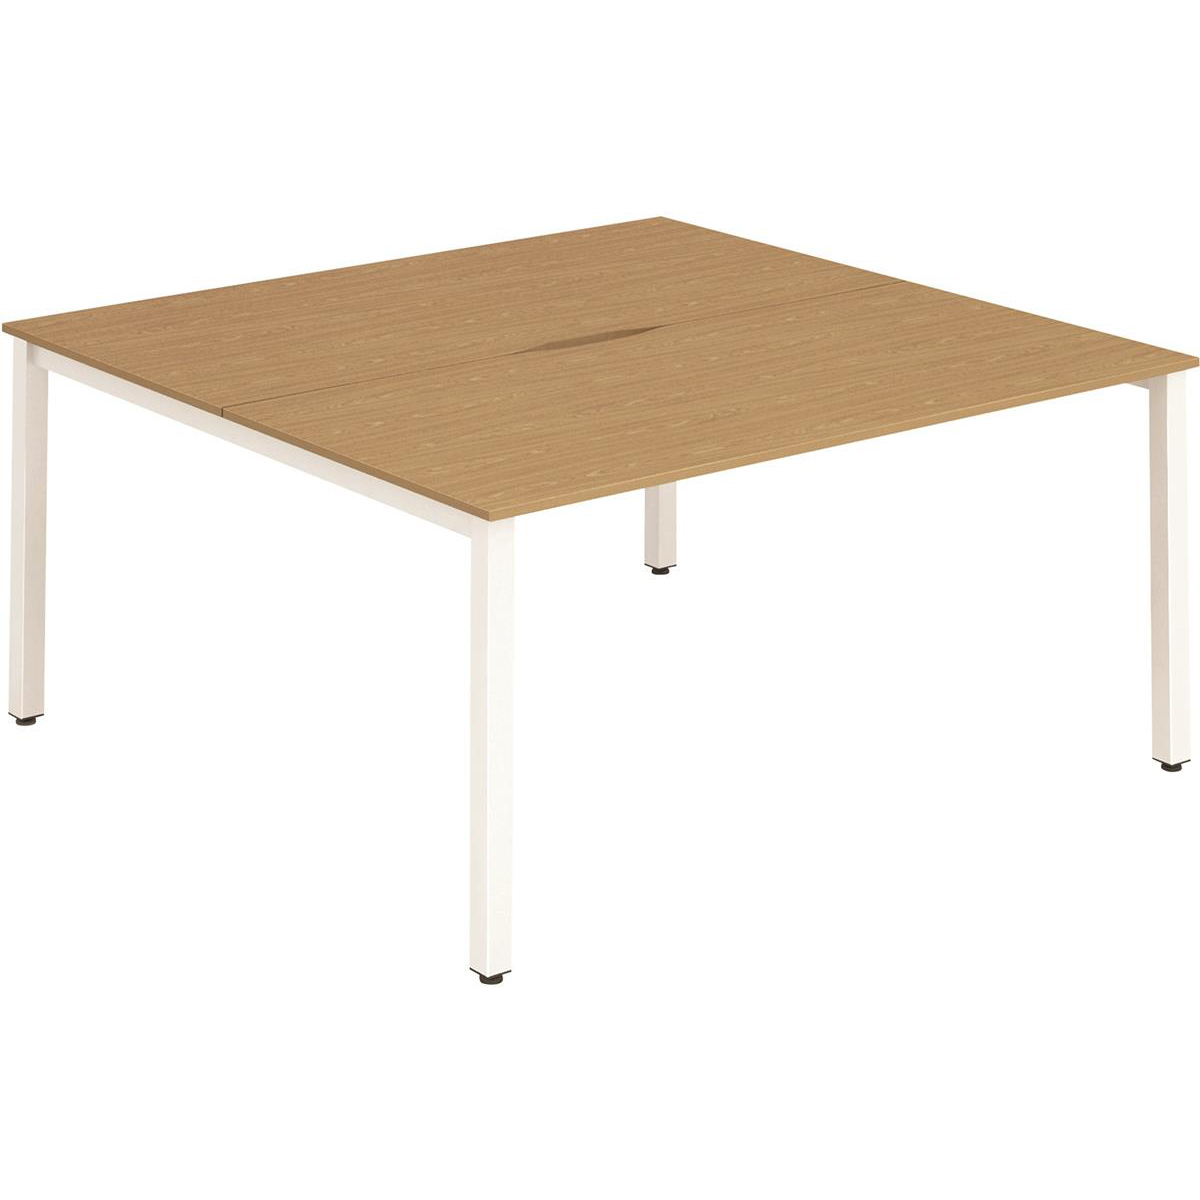 Trexus Bench Desk 2 Person Back to Back Configuration White Leg 1400x1600mm Oak Ref BE153